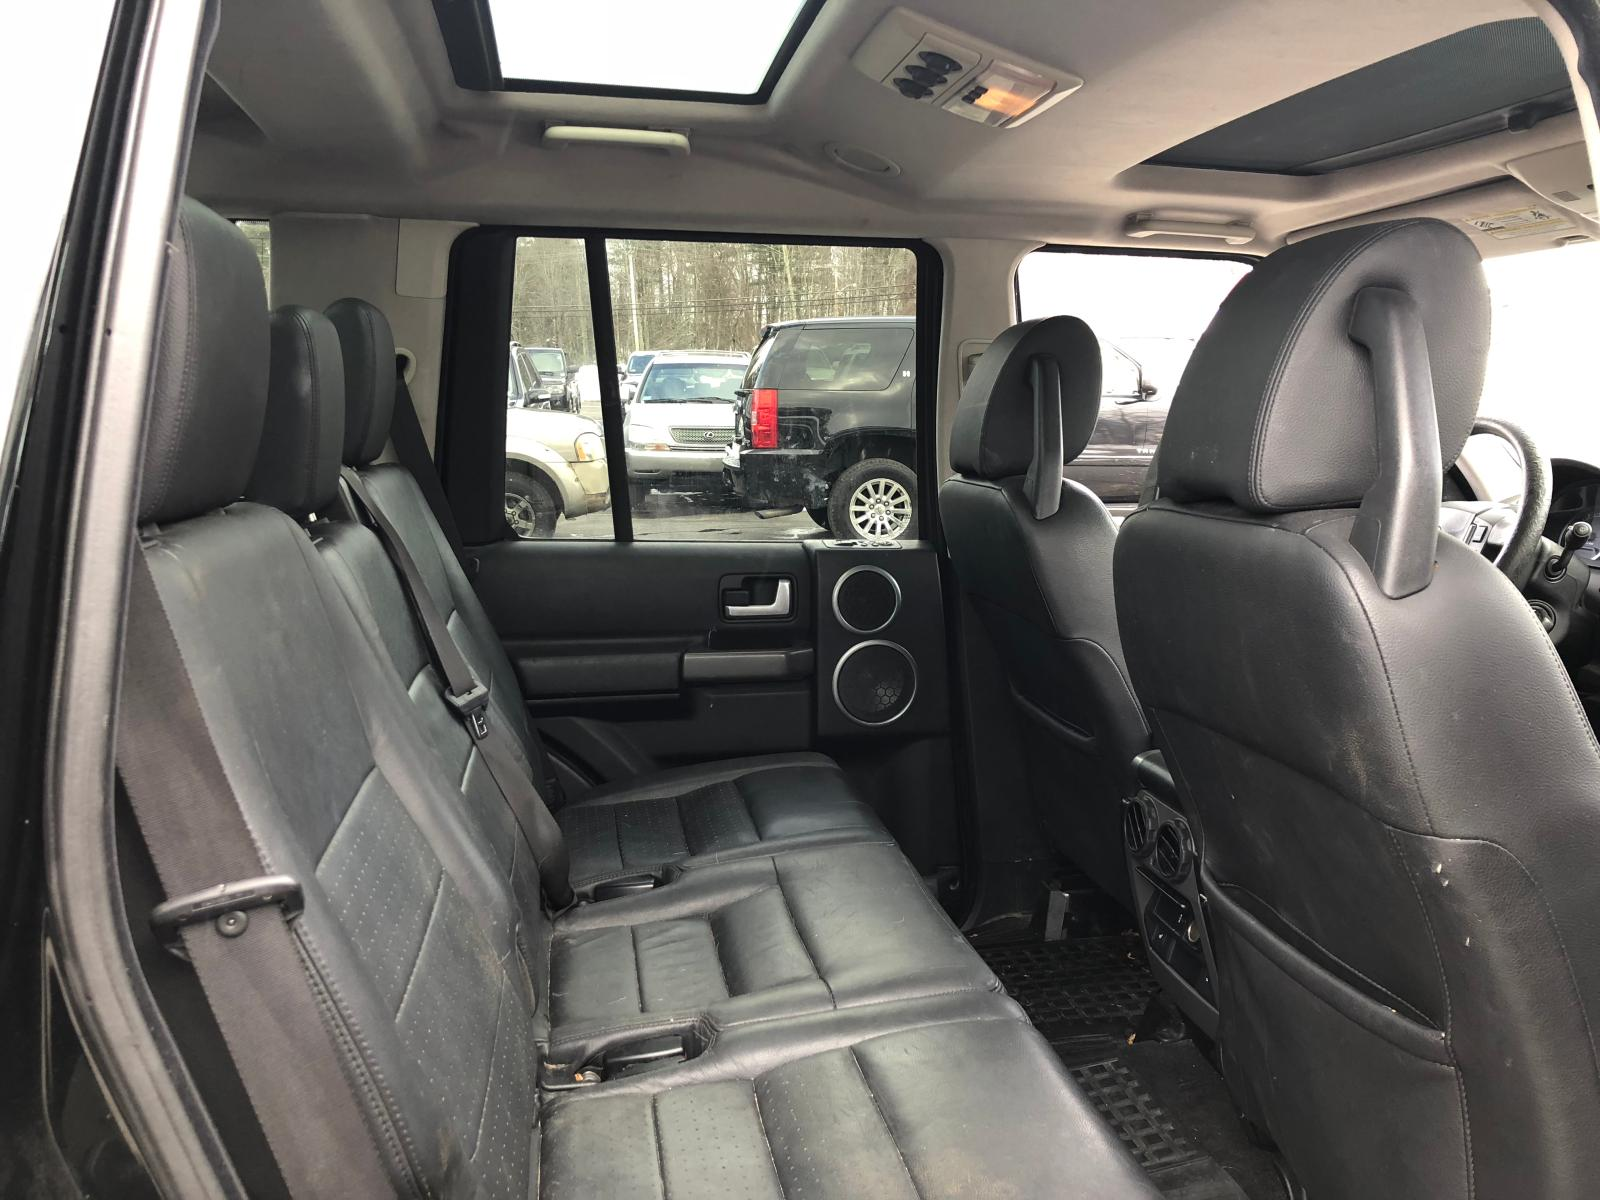 martinez auctions detail lot certificate salvage in landrover auto on sale online view for rover ca land hse en green copart carfinder